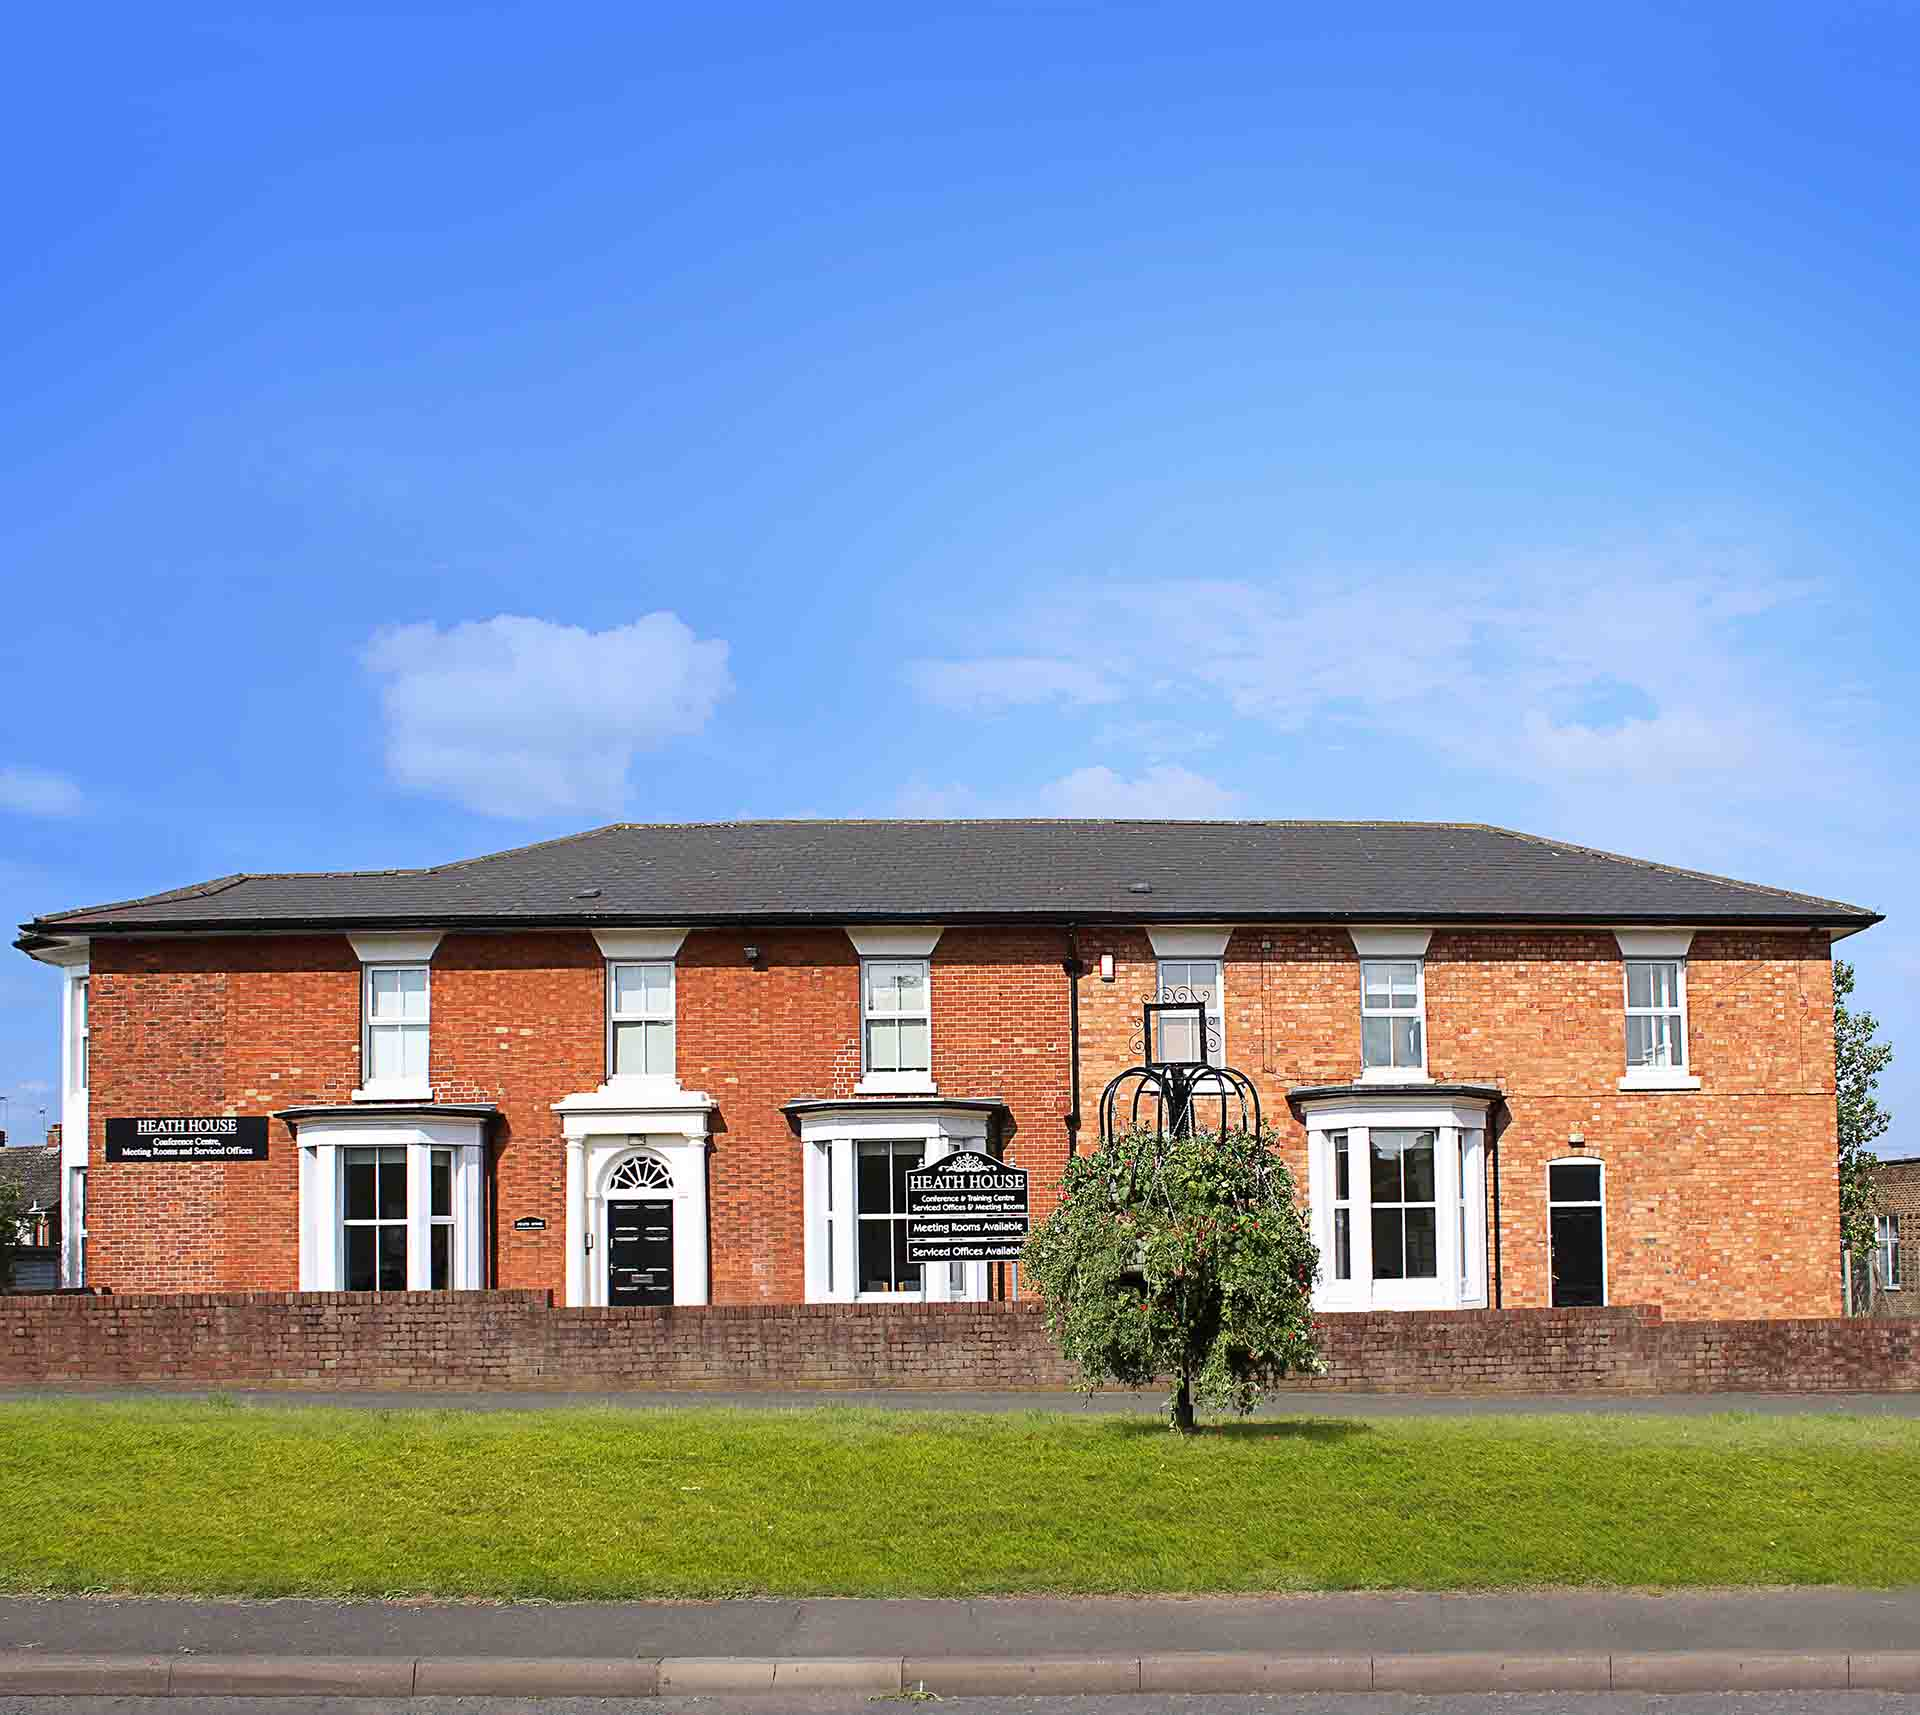 Conference Venue - Heath House CUttoxeter, Staffordshirence